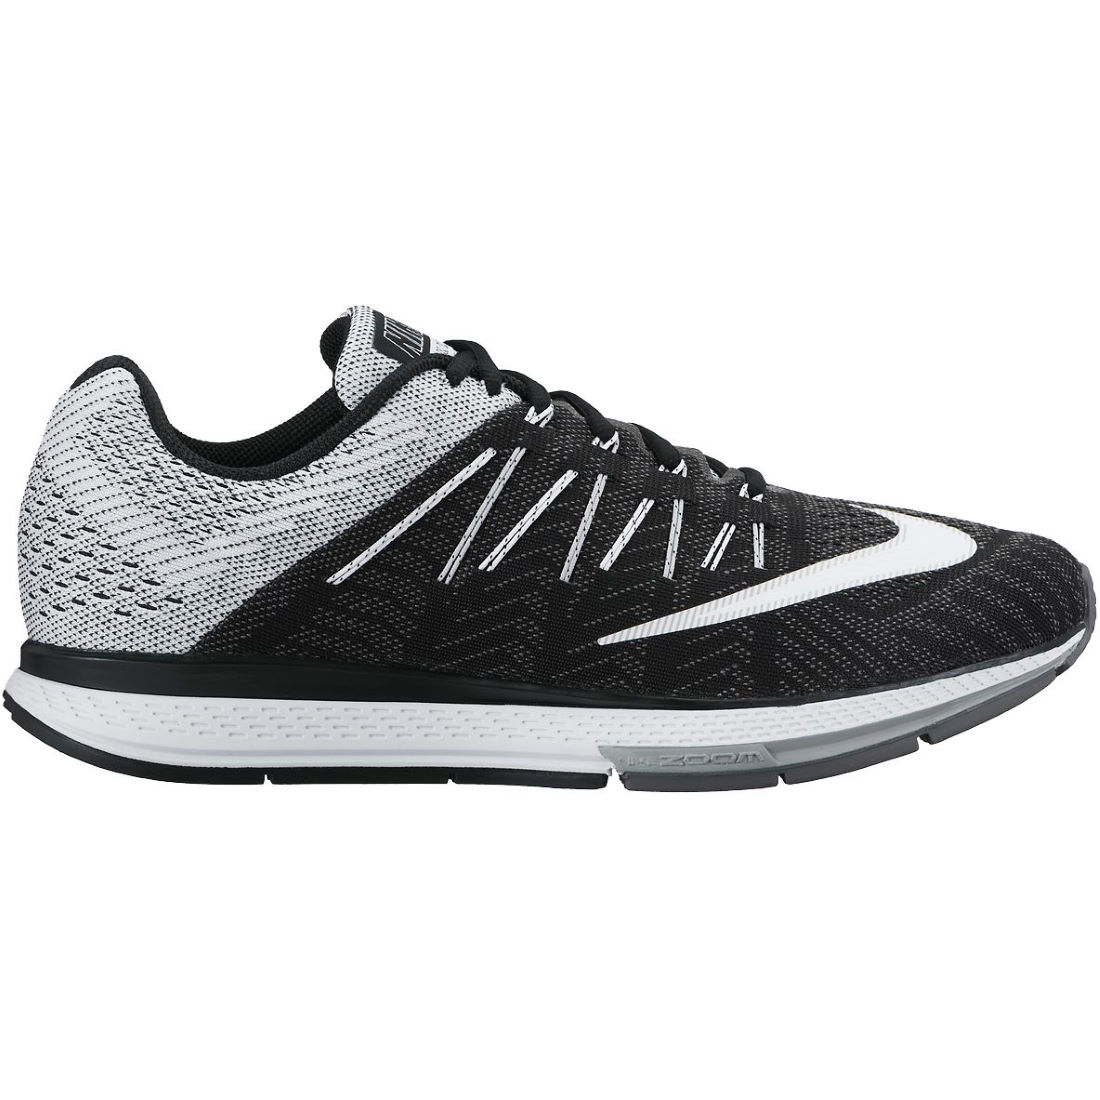 9fbab2754552 Women s Nike Air Zoom Structure 19 Running Shoes JackRabbit